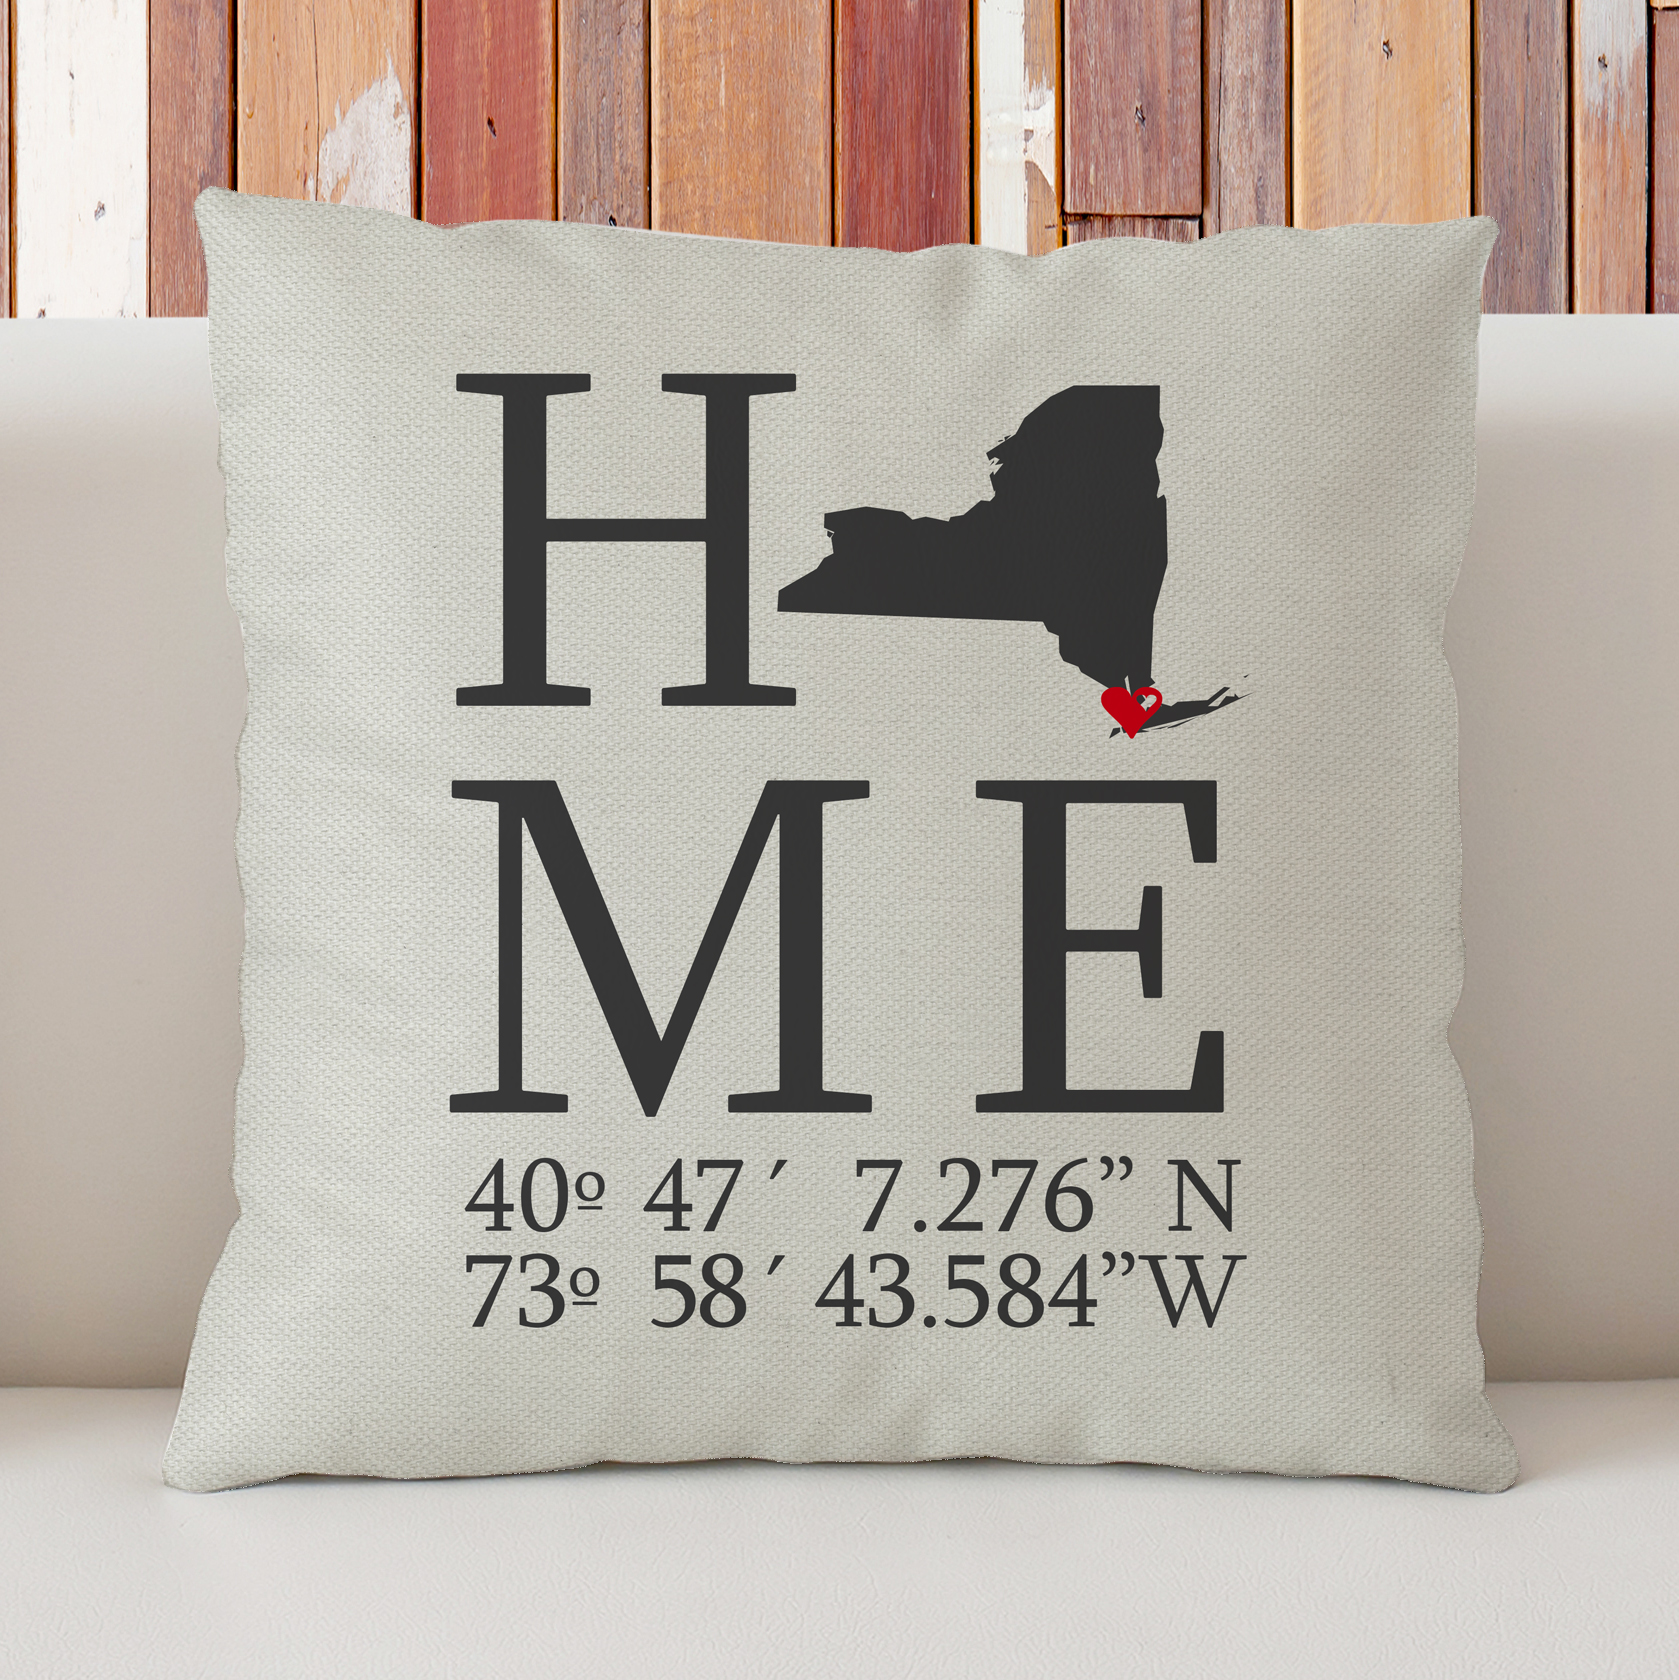 Personalized New York Home State Pillow With Coordinates Sold By Bebolddecor On Storenvy